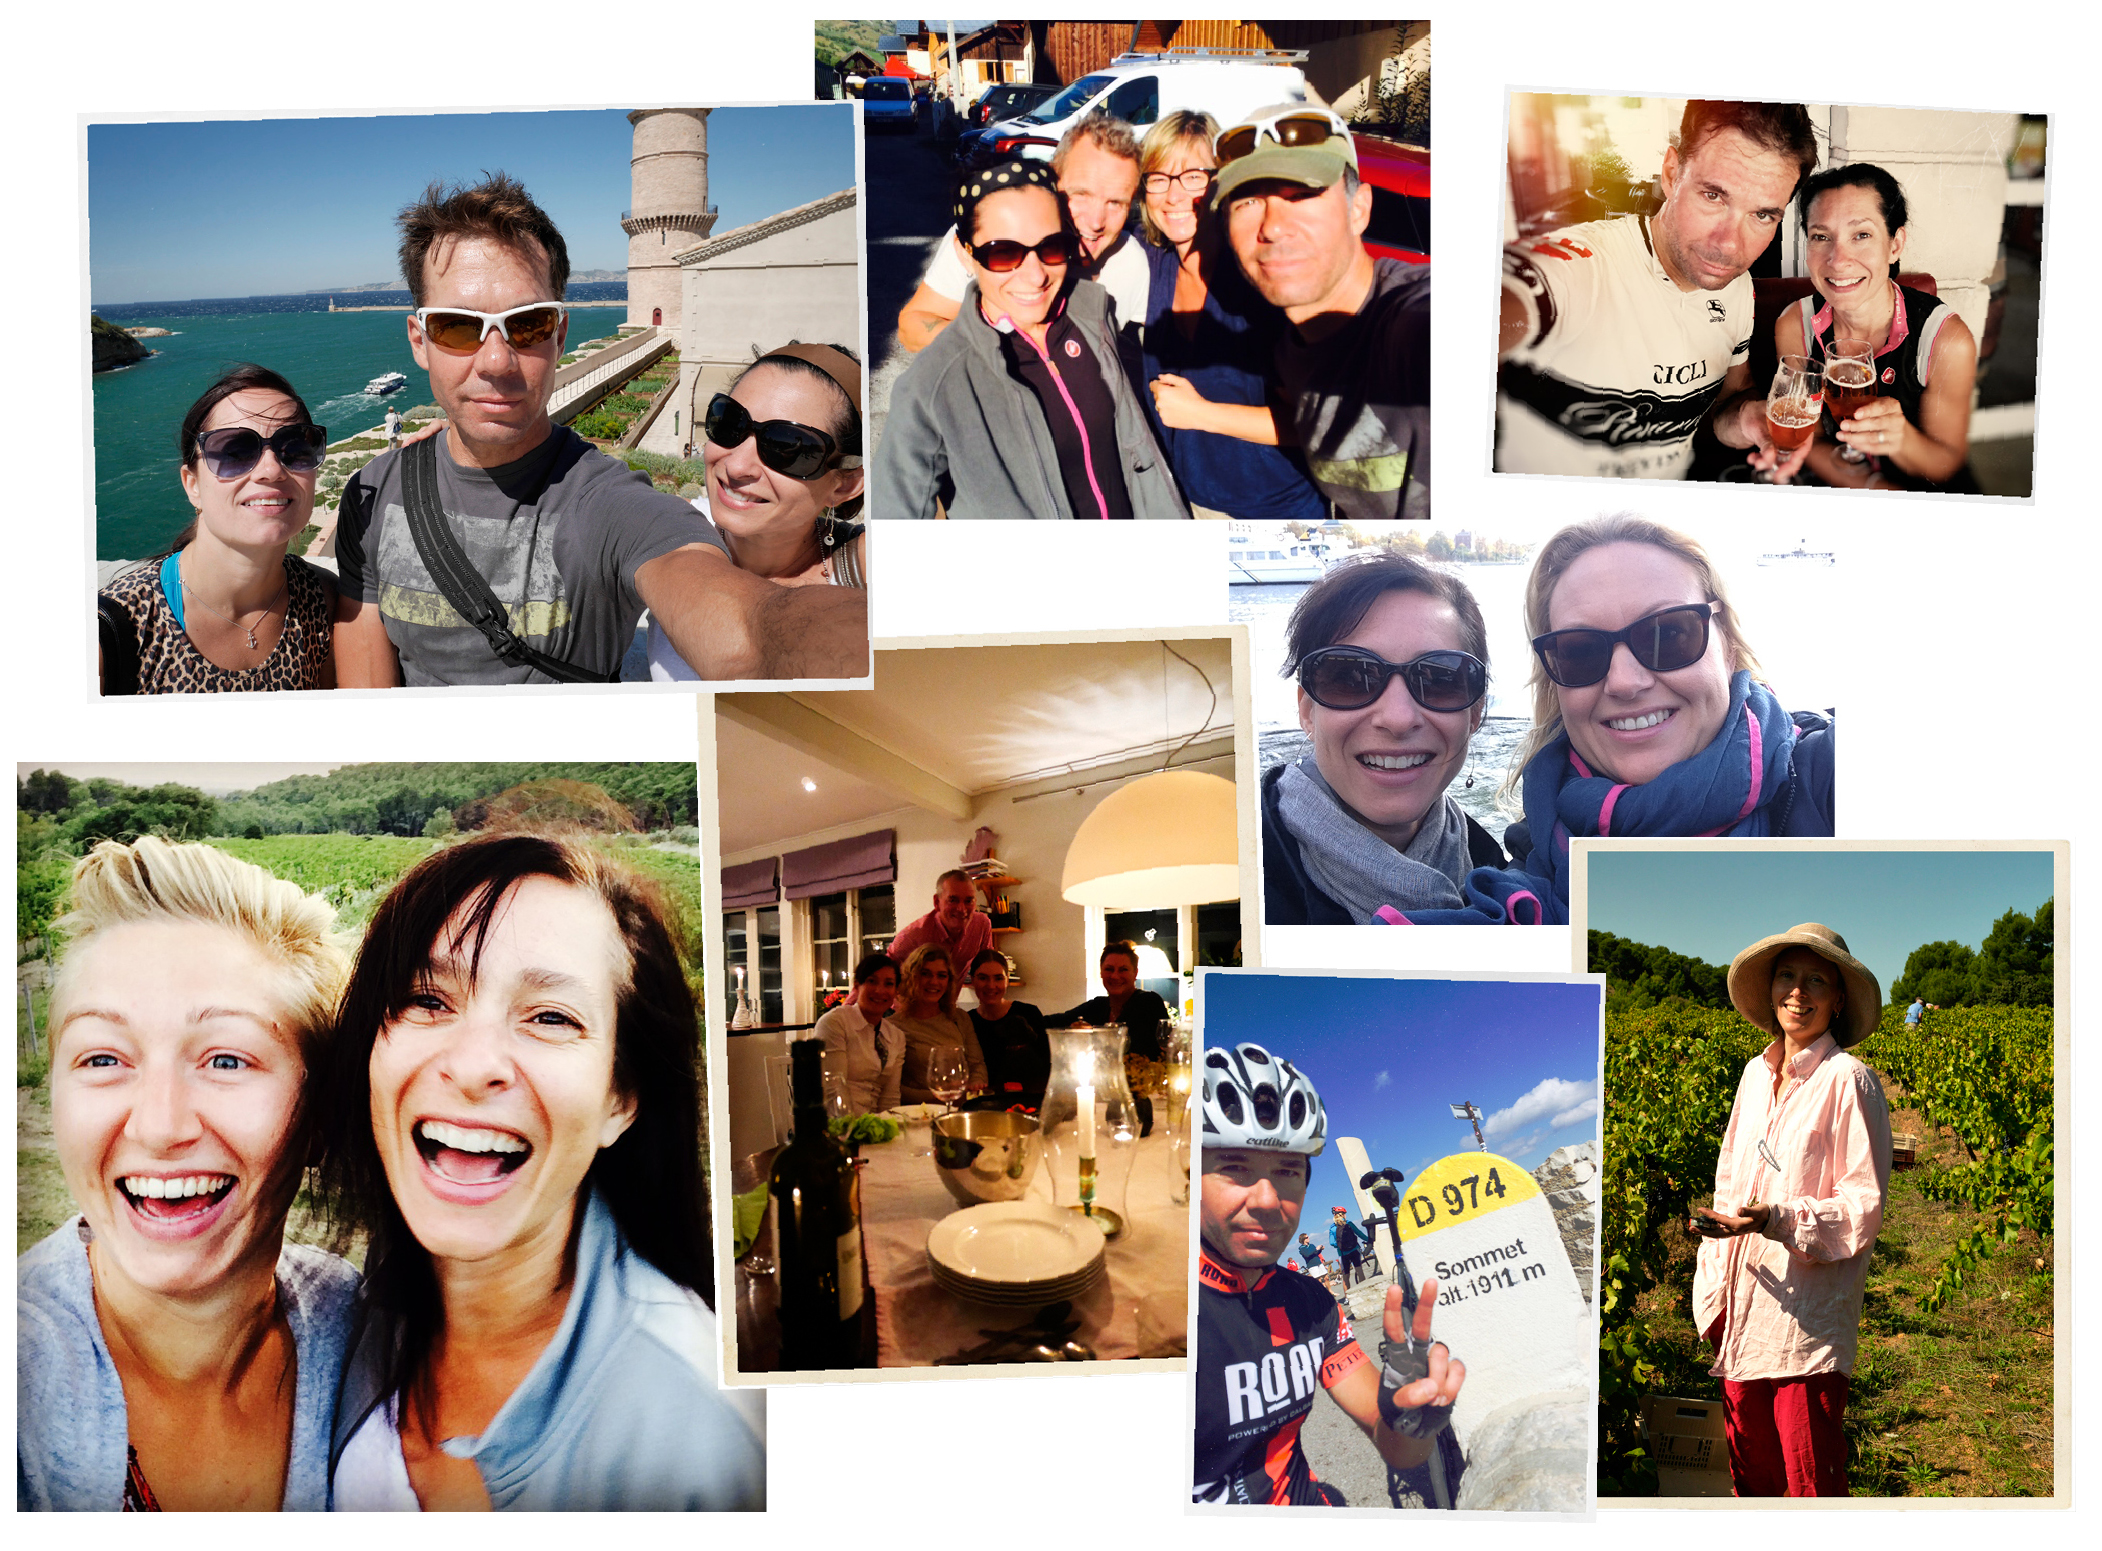 Summer of the selfies (top to bottom, left to right): Natalie, Jason & I in Marseille; Didi, Hugh, Jay and I in the Alps; Jay and I having a post-ride beer; Tove & me at Clos de Caveau; dinner in Stockholm with Tove's family, Tara and I in Stockholm, Jay at the top of Ventoux on his second ascent of the day; Zara harvesting in Le Barroux.